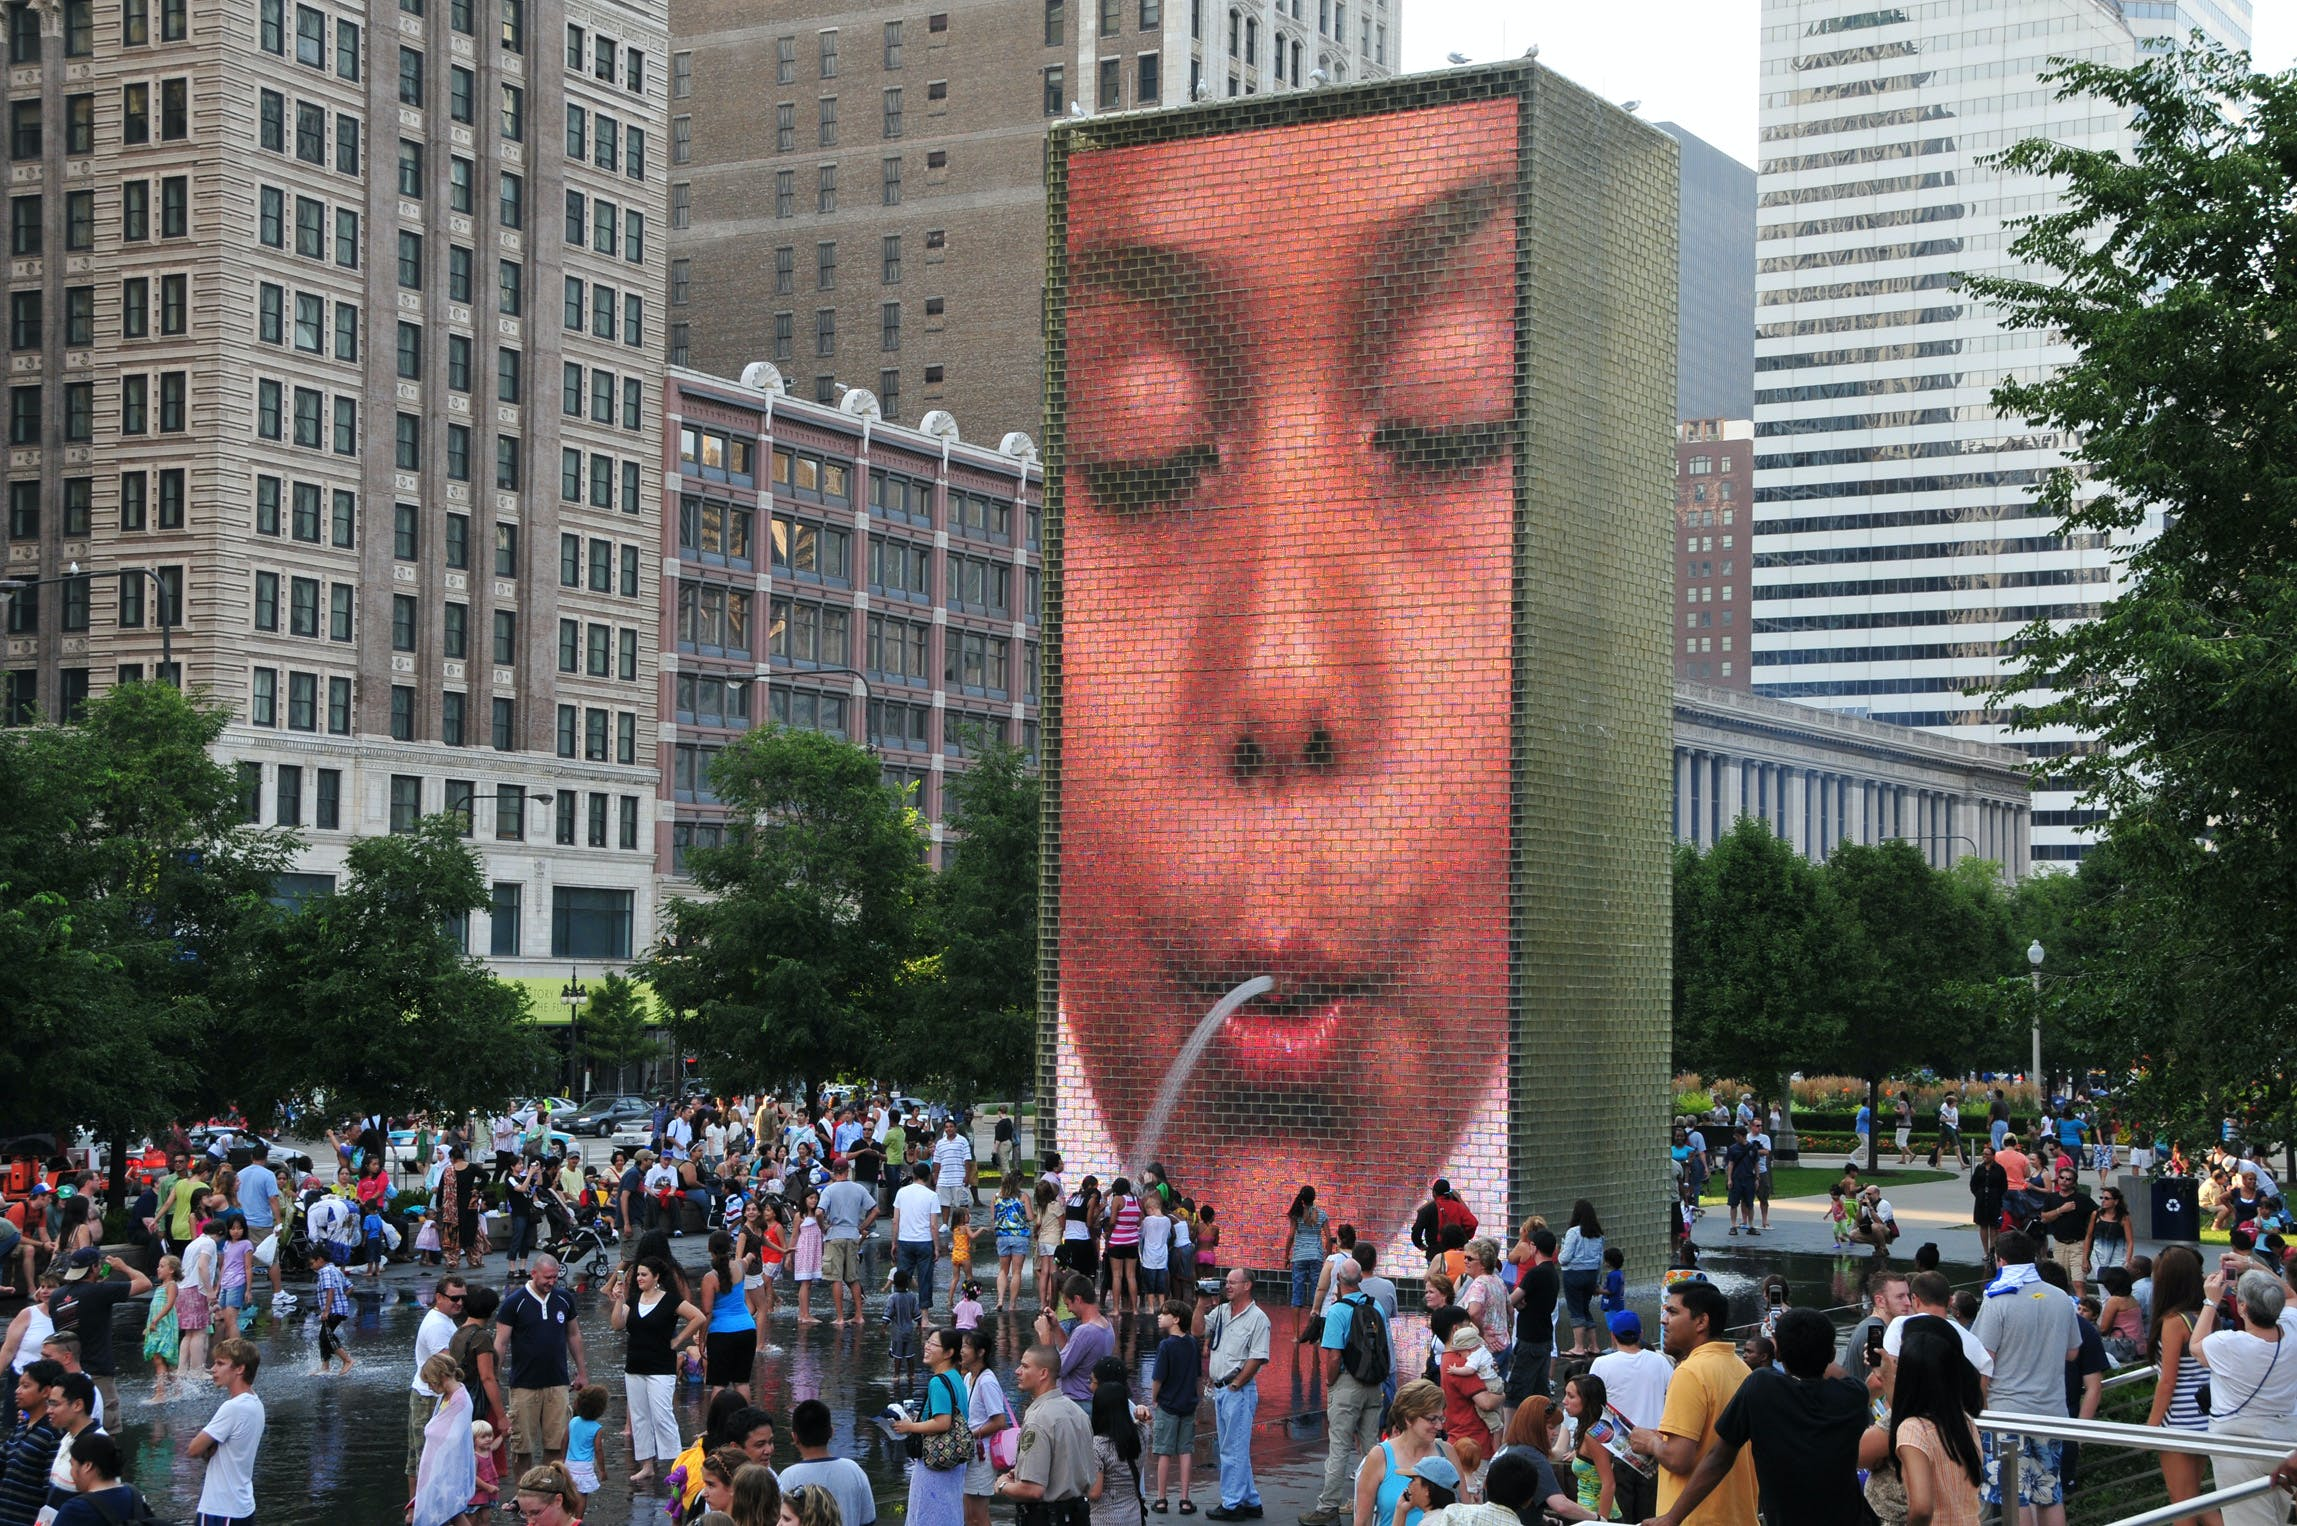 """A crowd gathers around Crown Fountain in Chicago's Millenium Park, where a fountain appears to """"spit"""" water on visitors."""